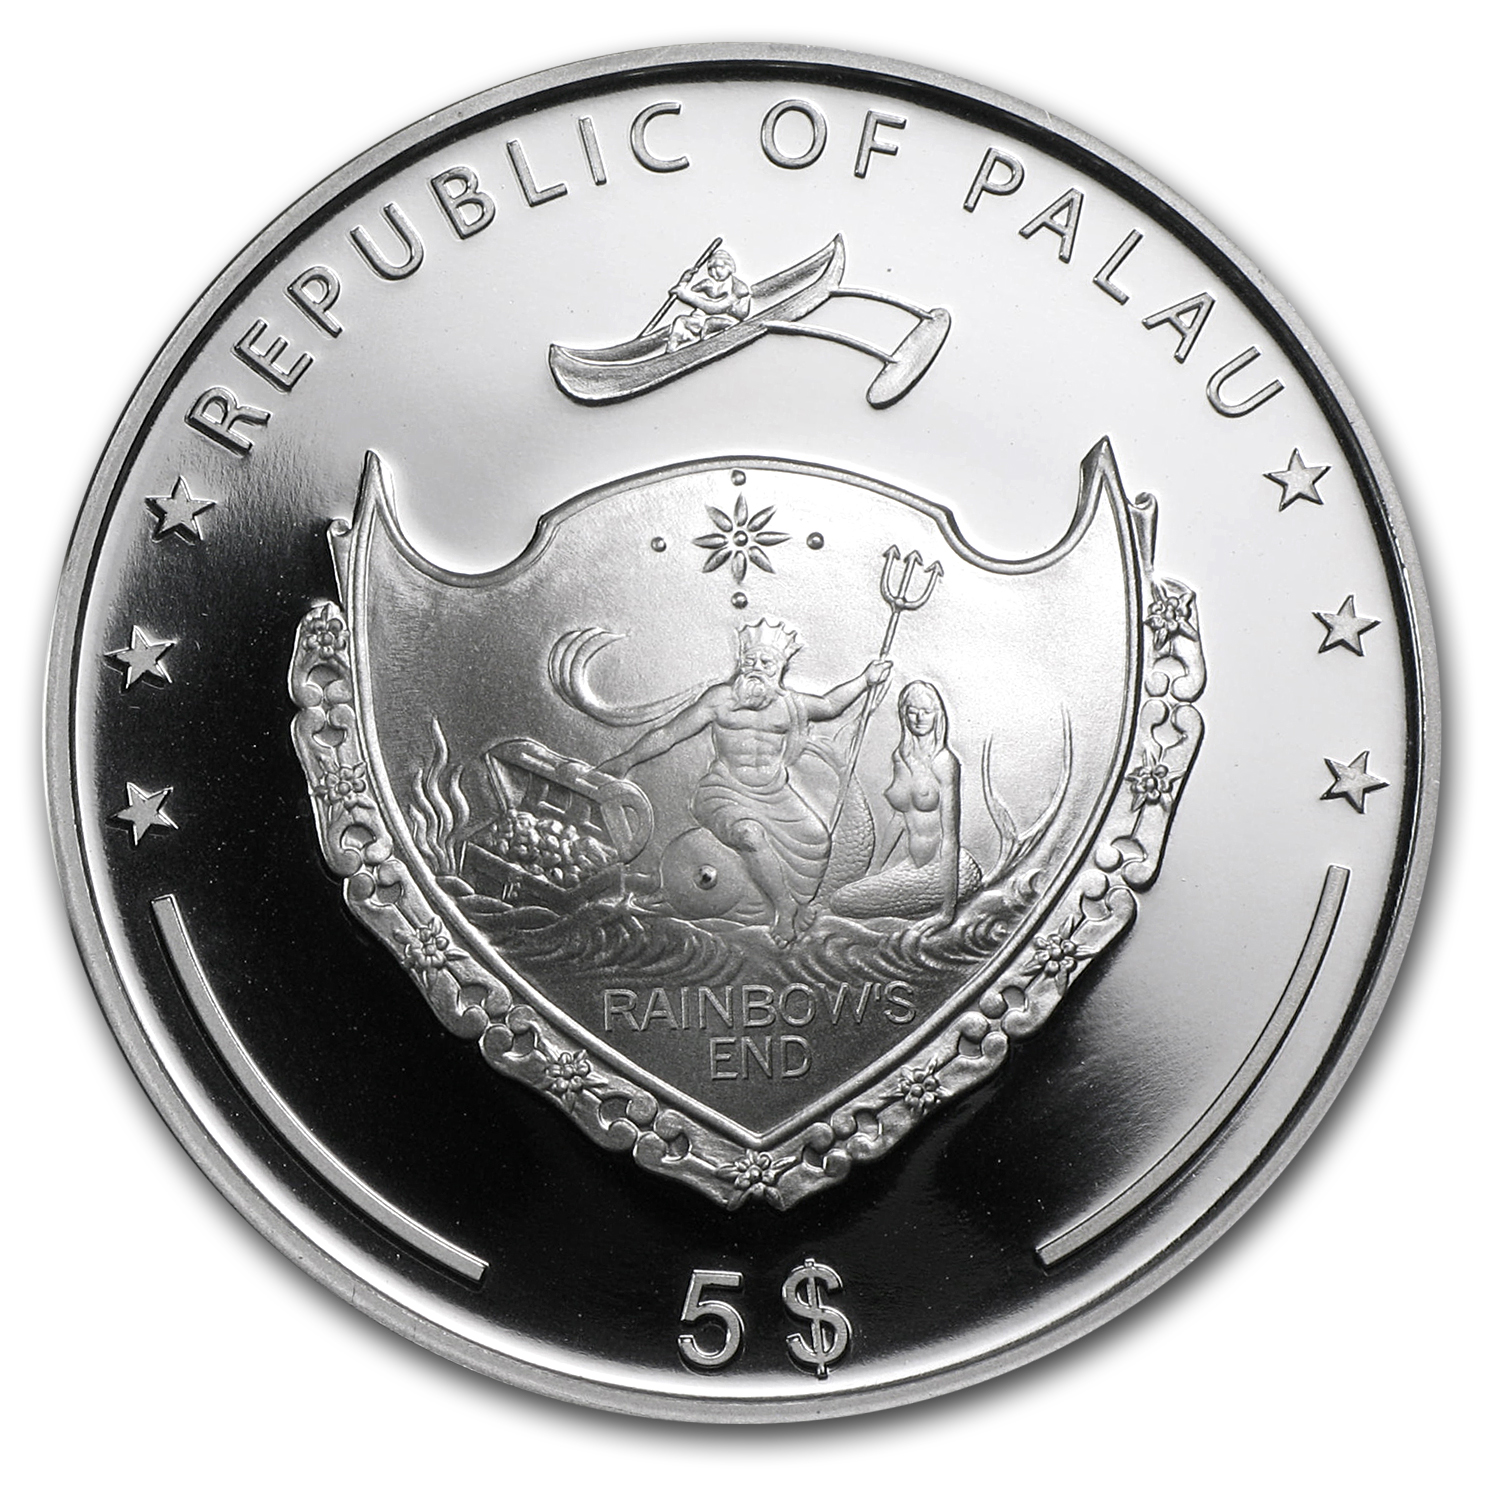 2008 Palau Silver $5 Marine Life Protection Pearl of the Sea